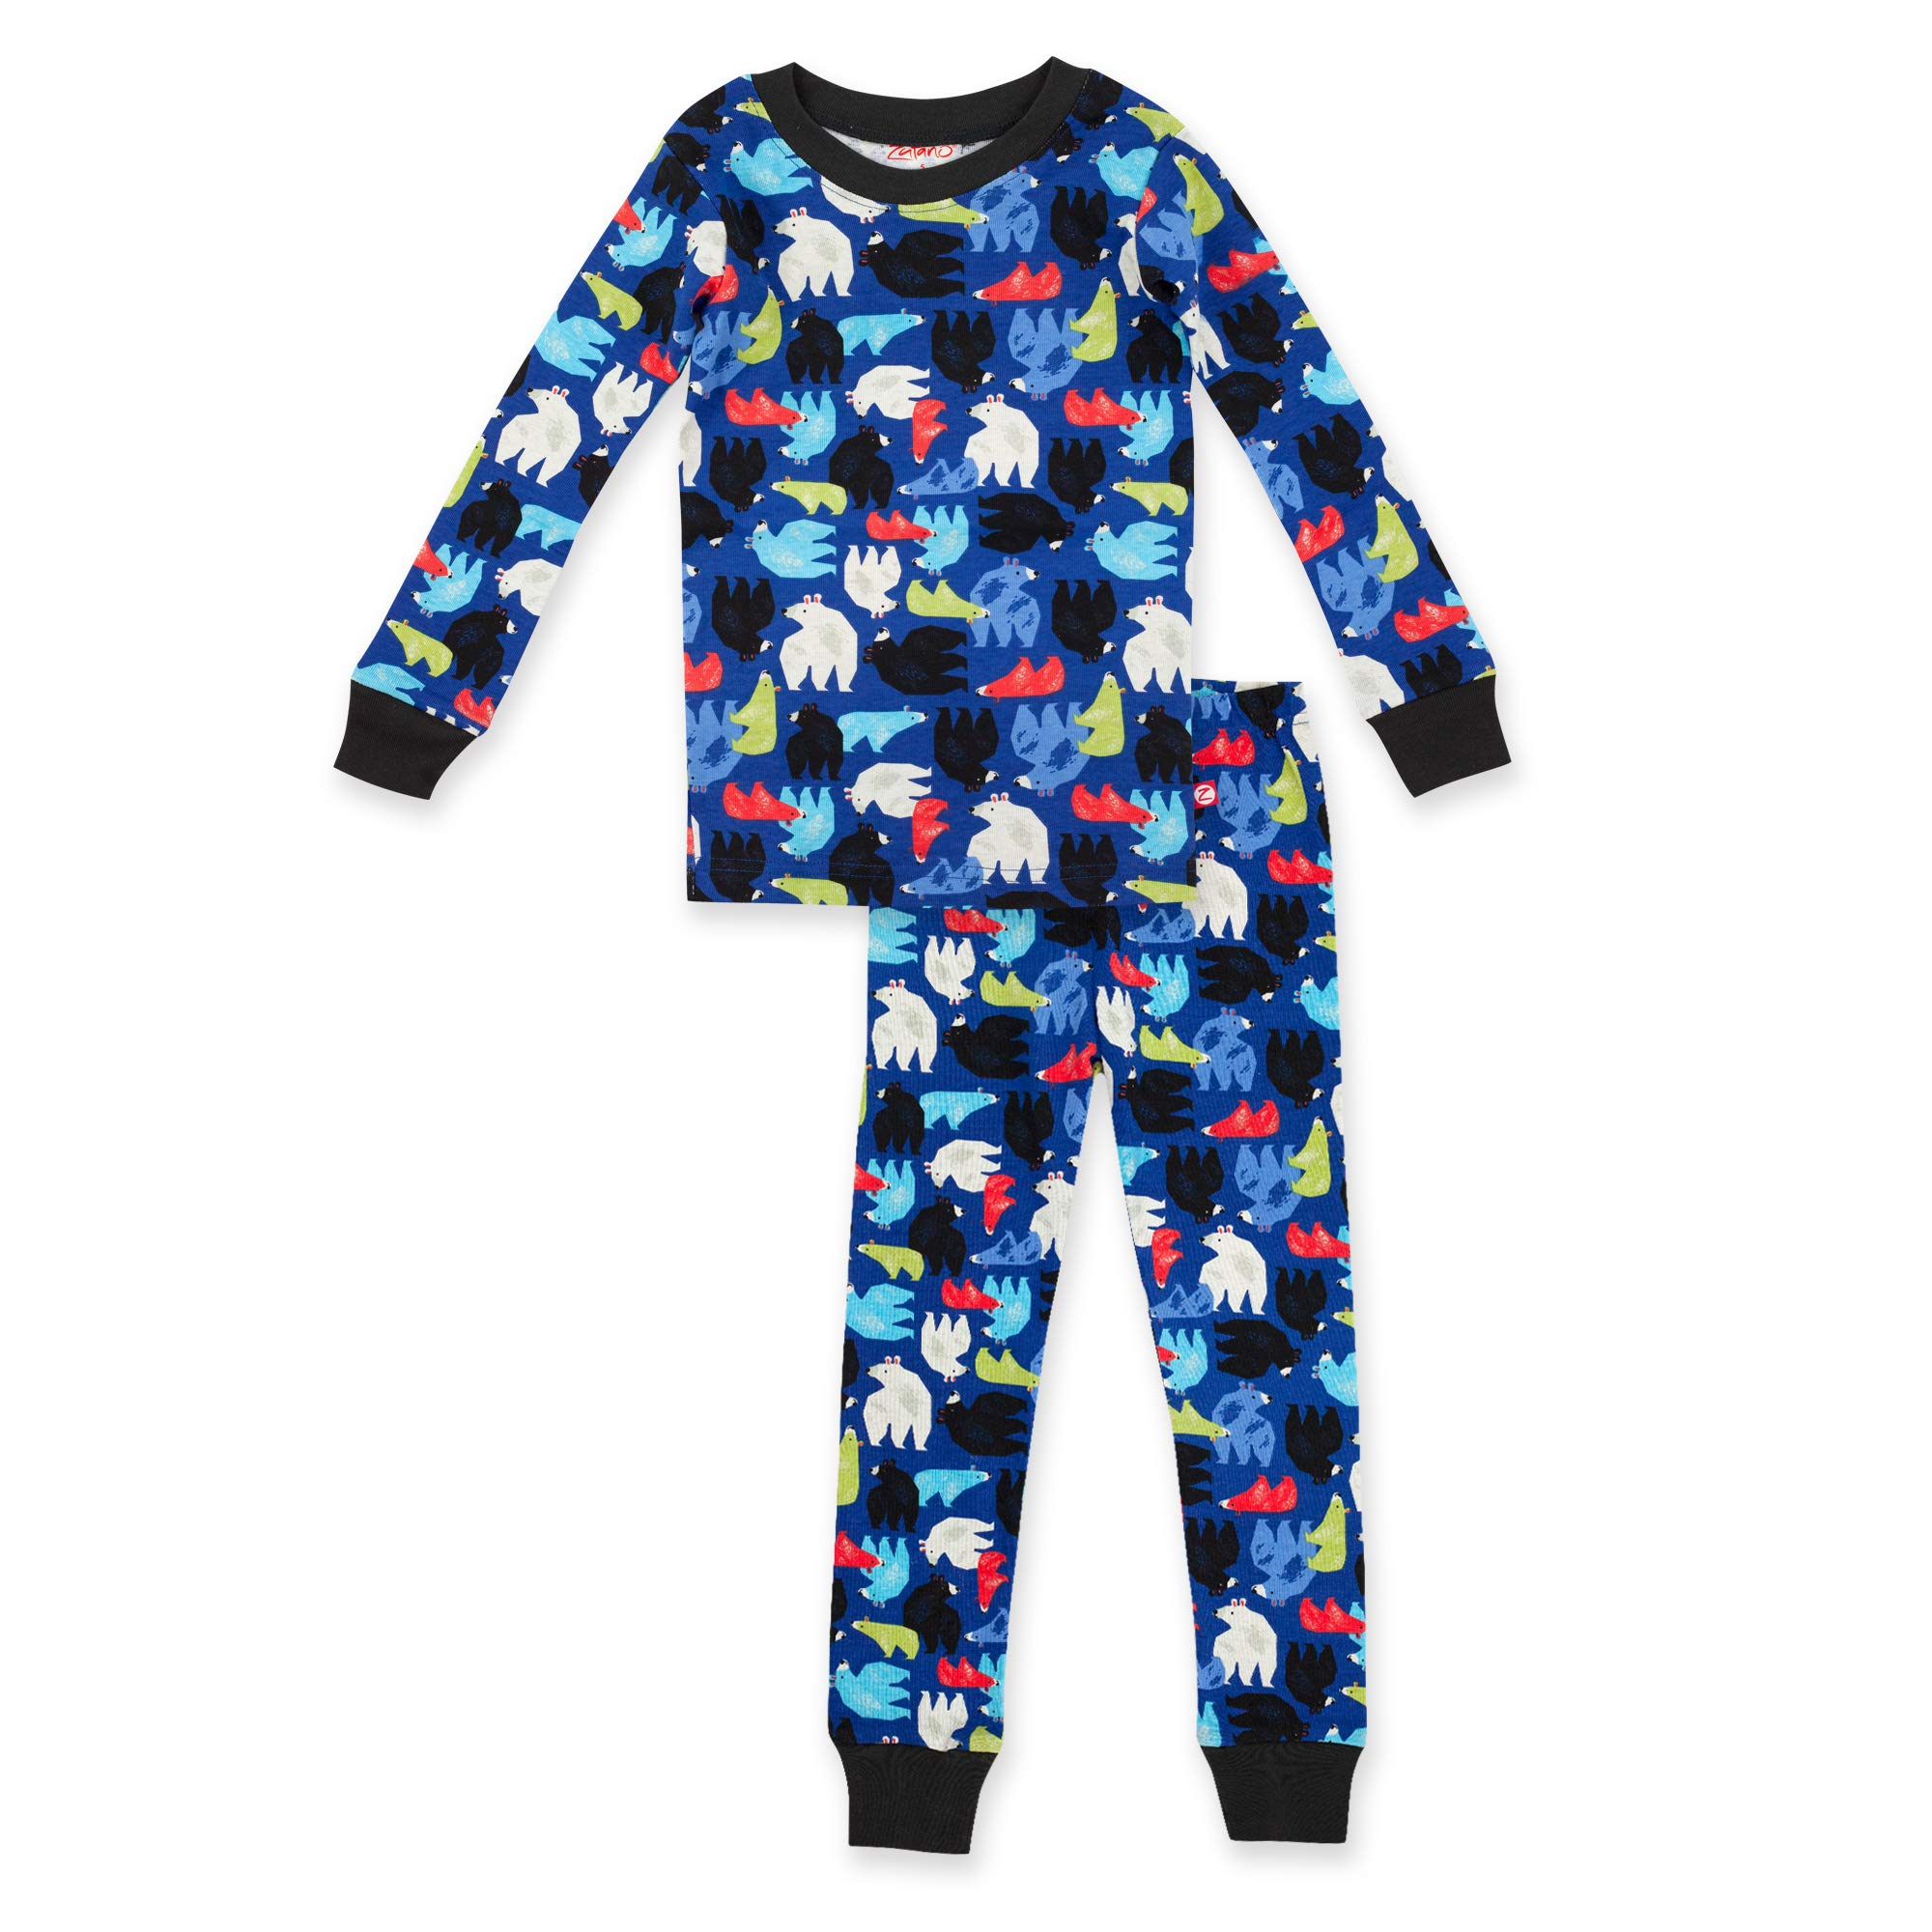 Zutano Baby/Toddler Boys Two-Piece Footless Pajamas, Big Bear, 2 by Zutano